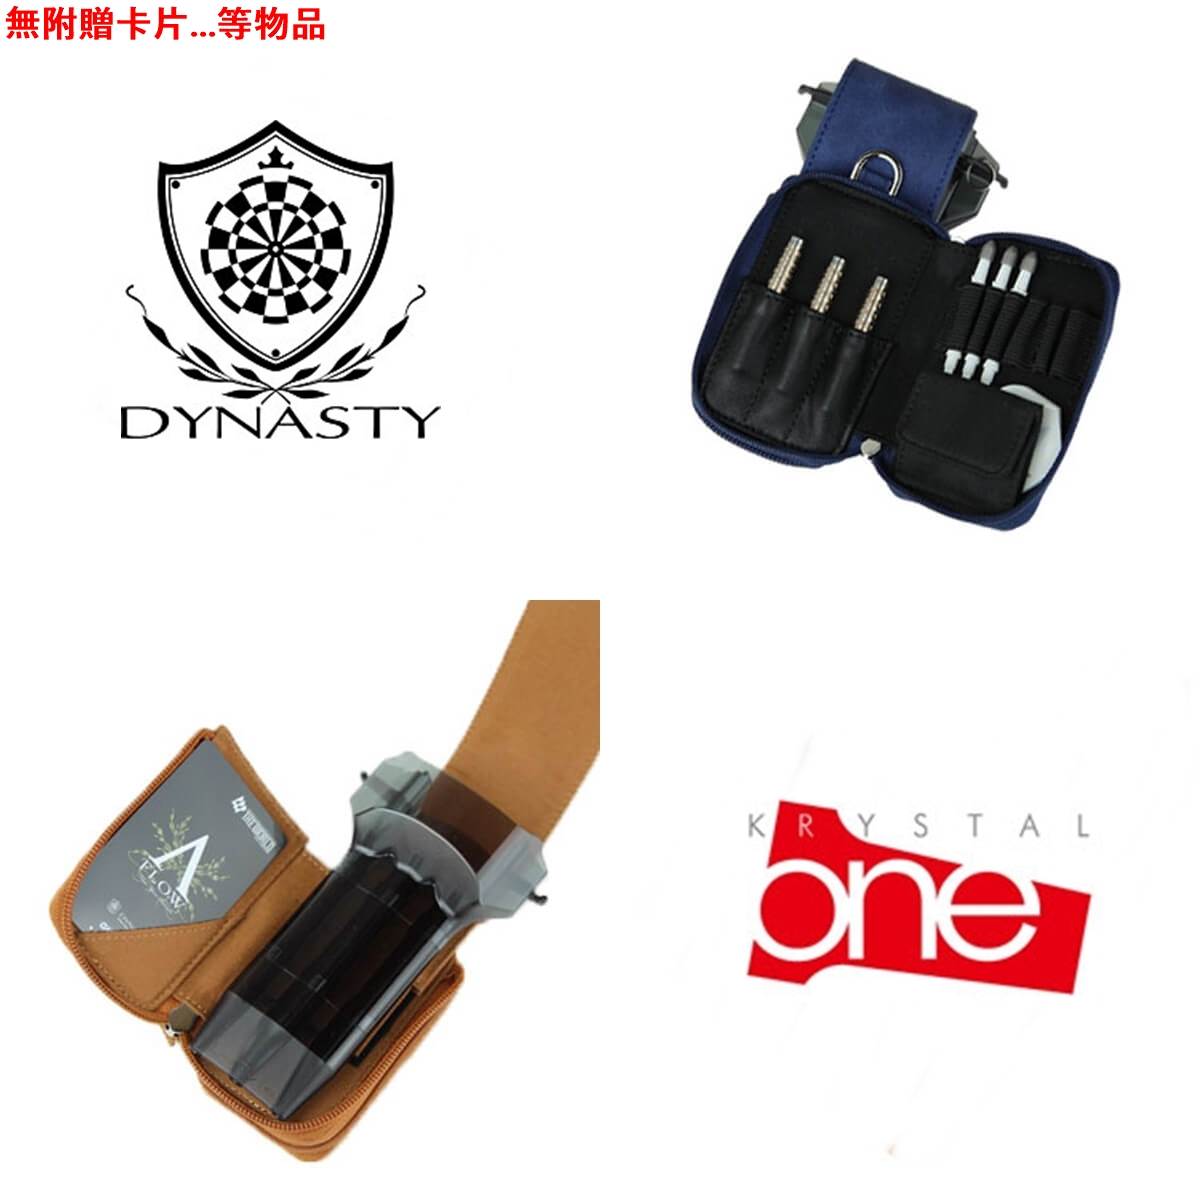 DYNASTY-DARTS-CASE-GLASSES-01.jpg